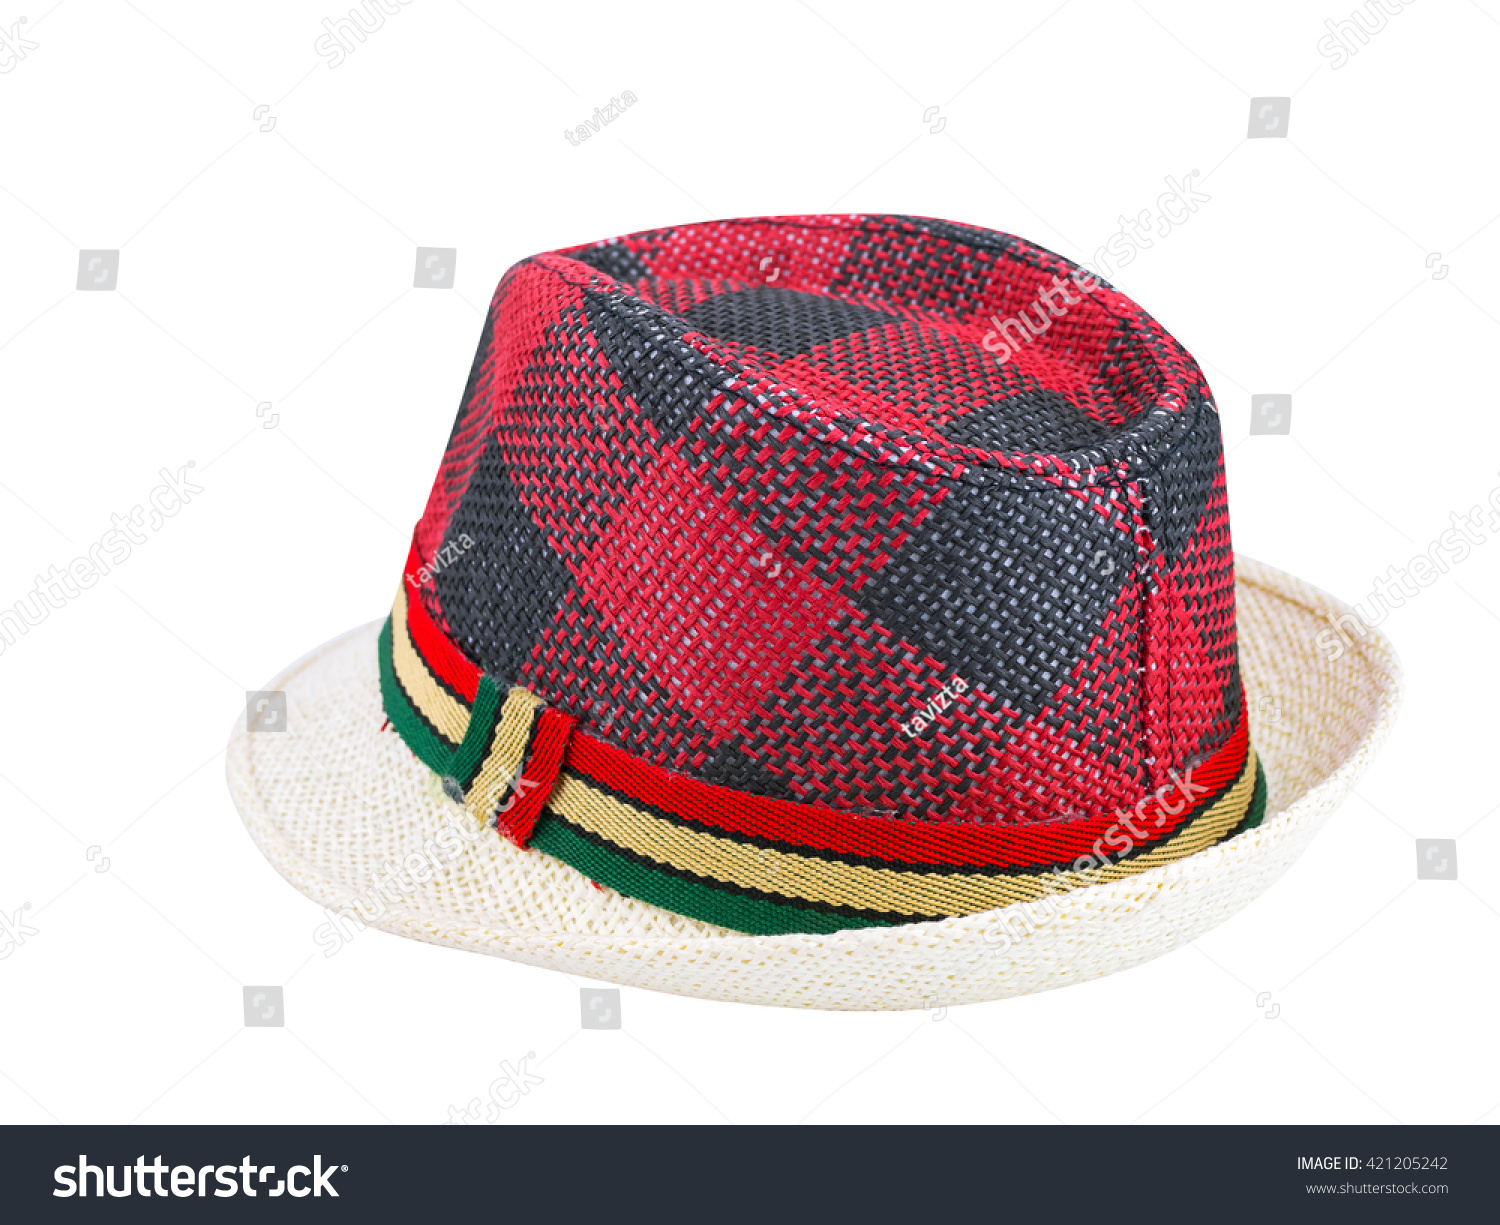 2c7bd9b88e6 Weave Hat Isolated On White Background Stock Photo (Edit Now ...